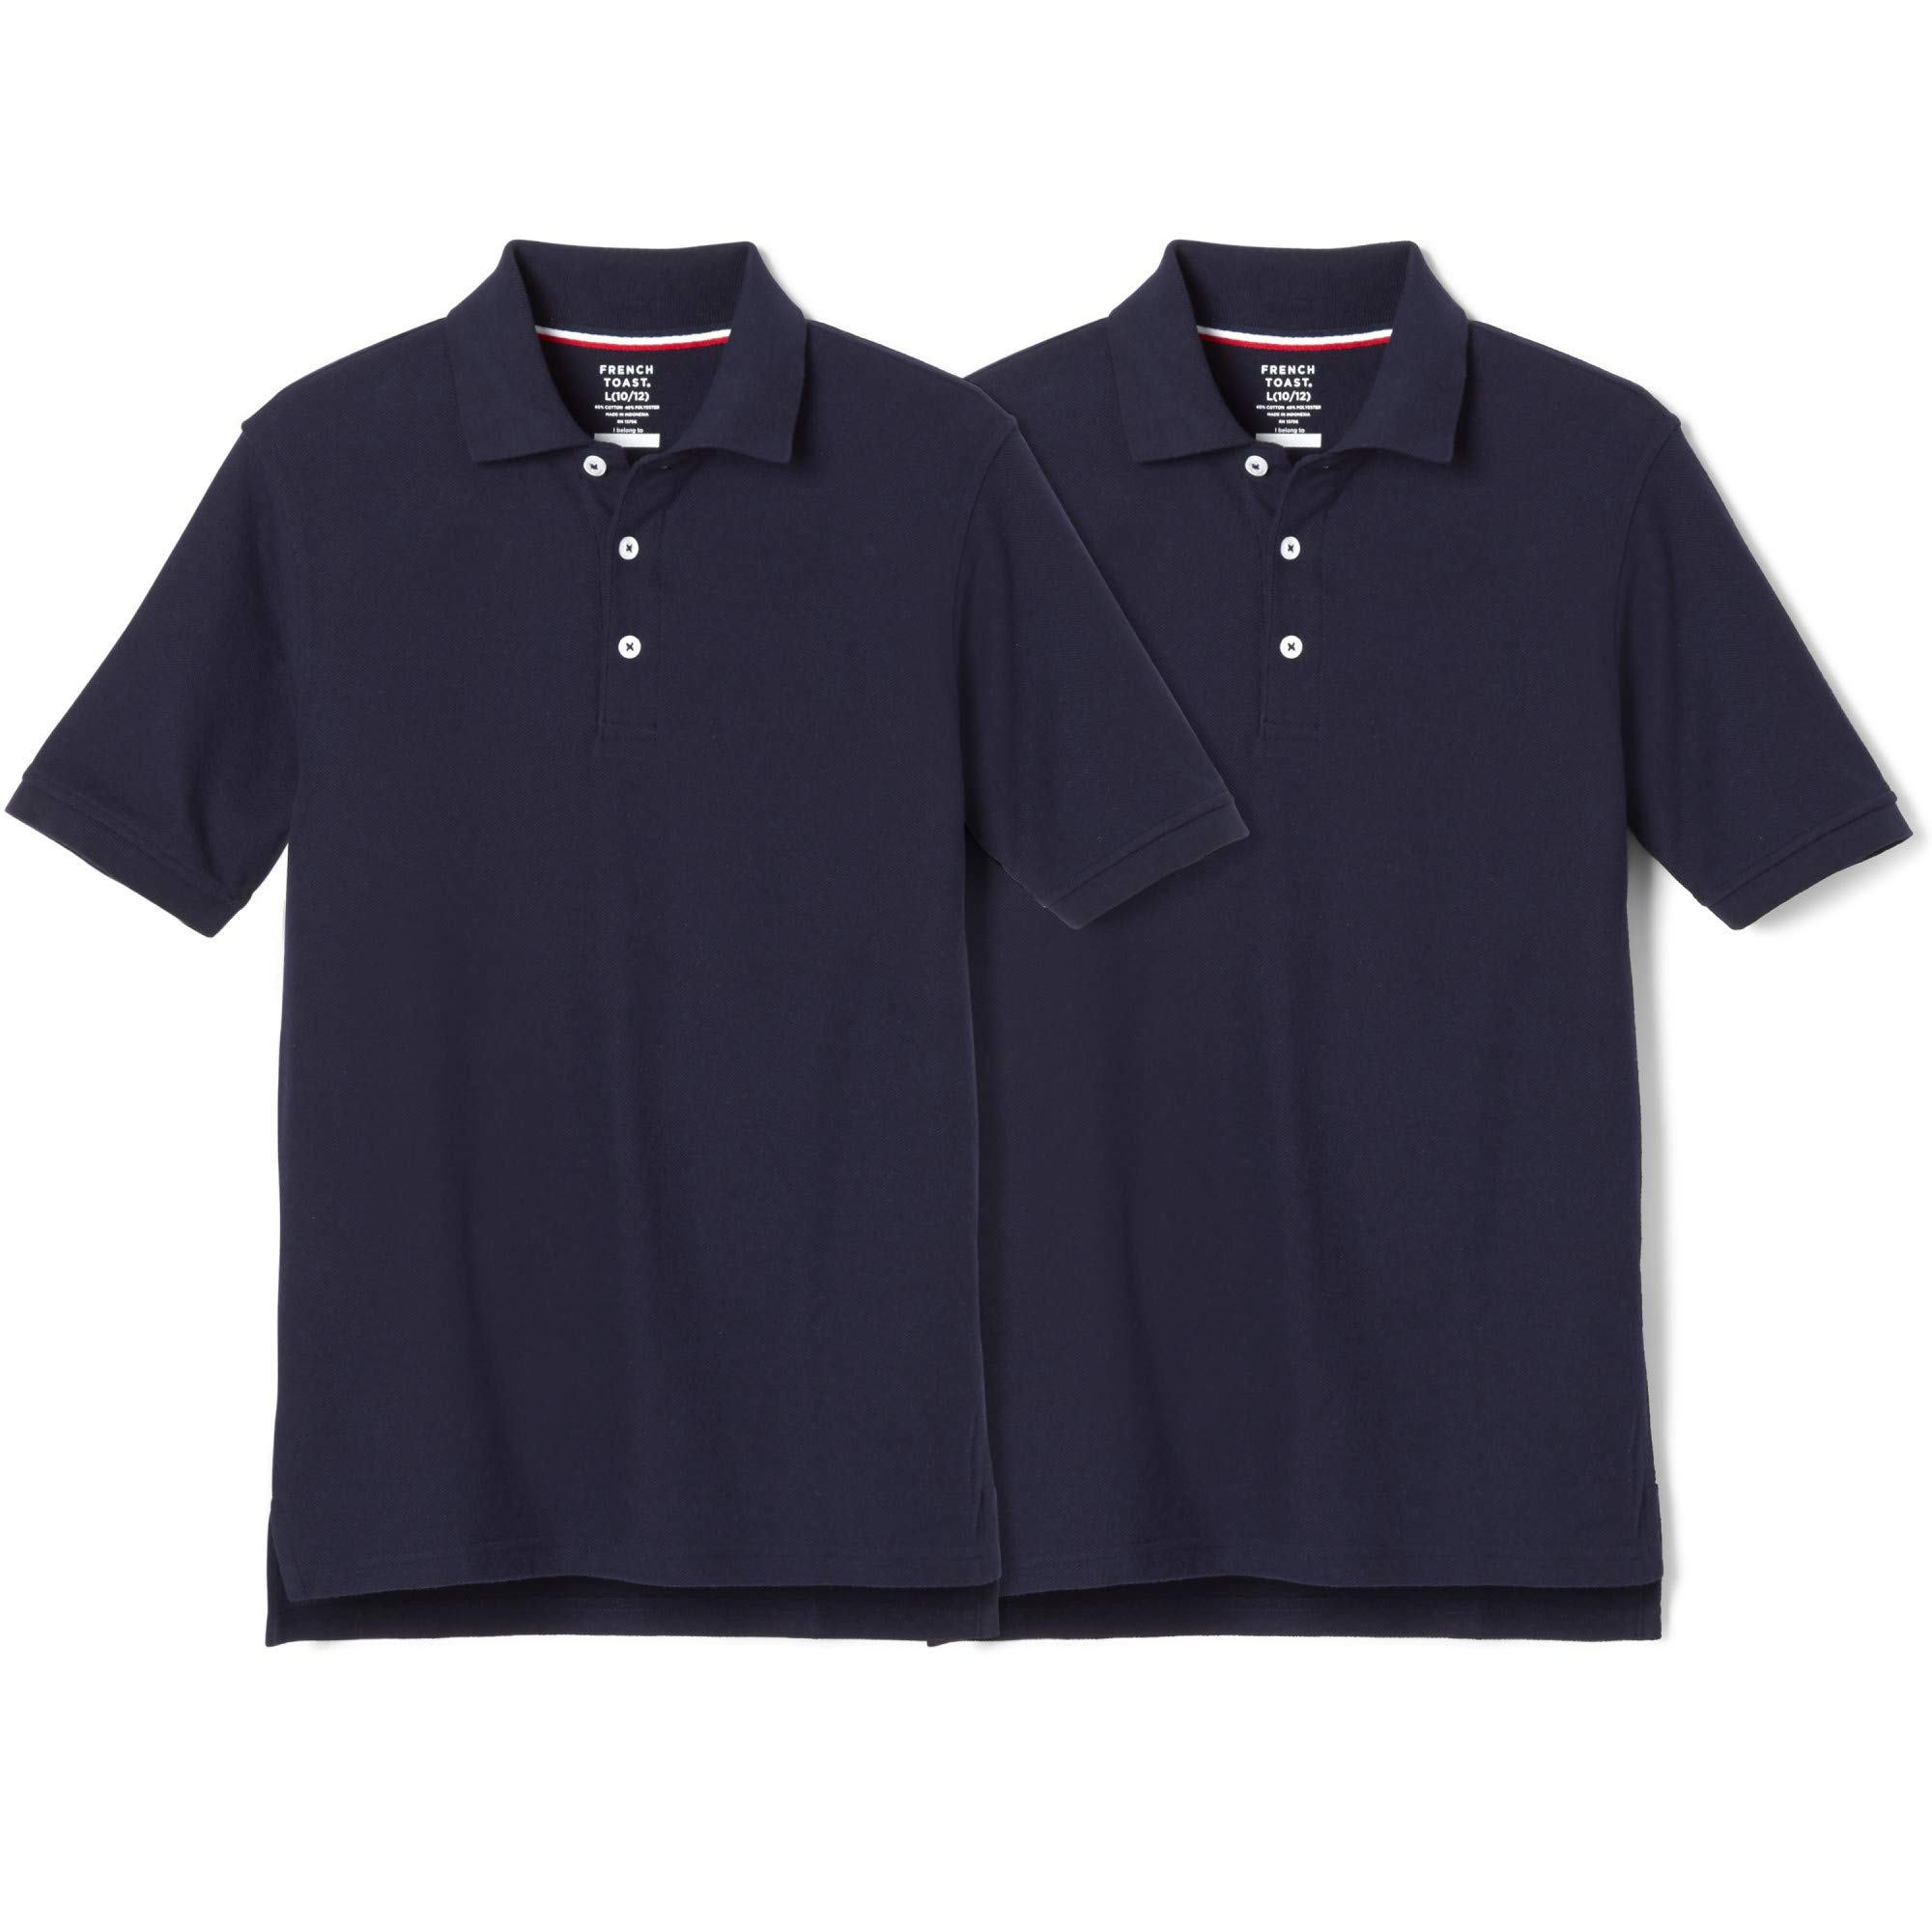 French Toast Boys' Big 2-Pack Short Sleeve Pique Polo Shirt, Navy, L (10/12)